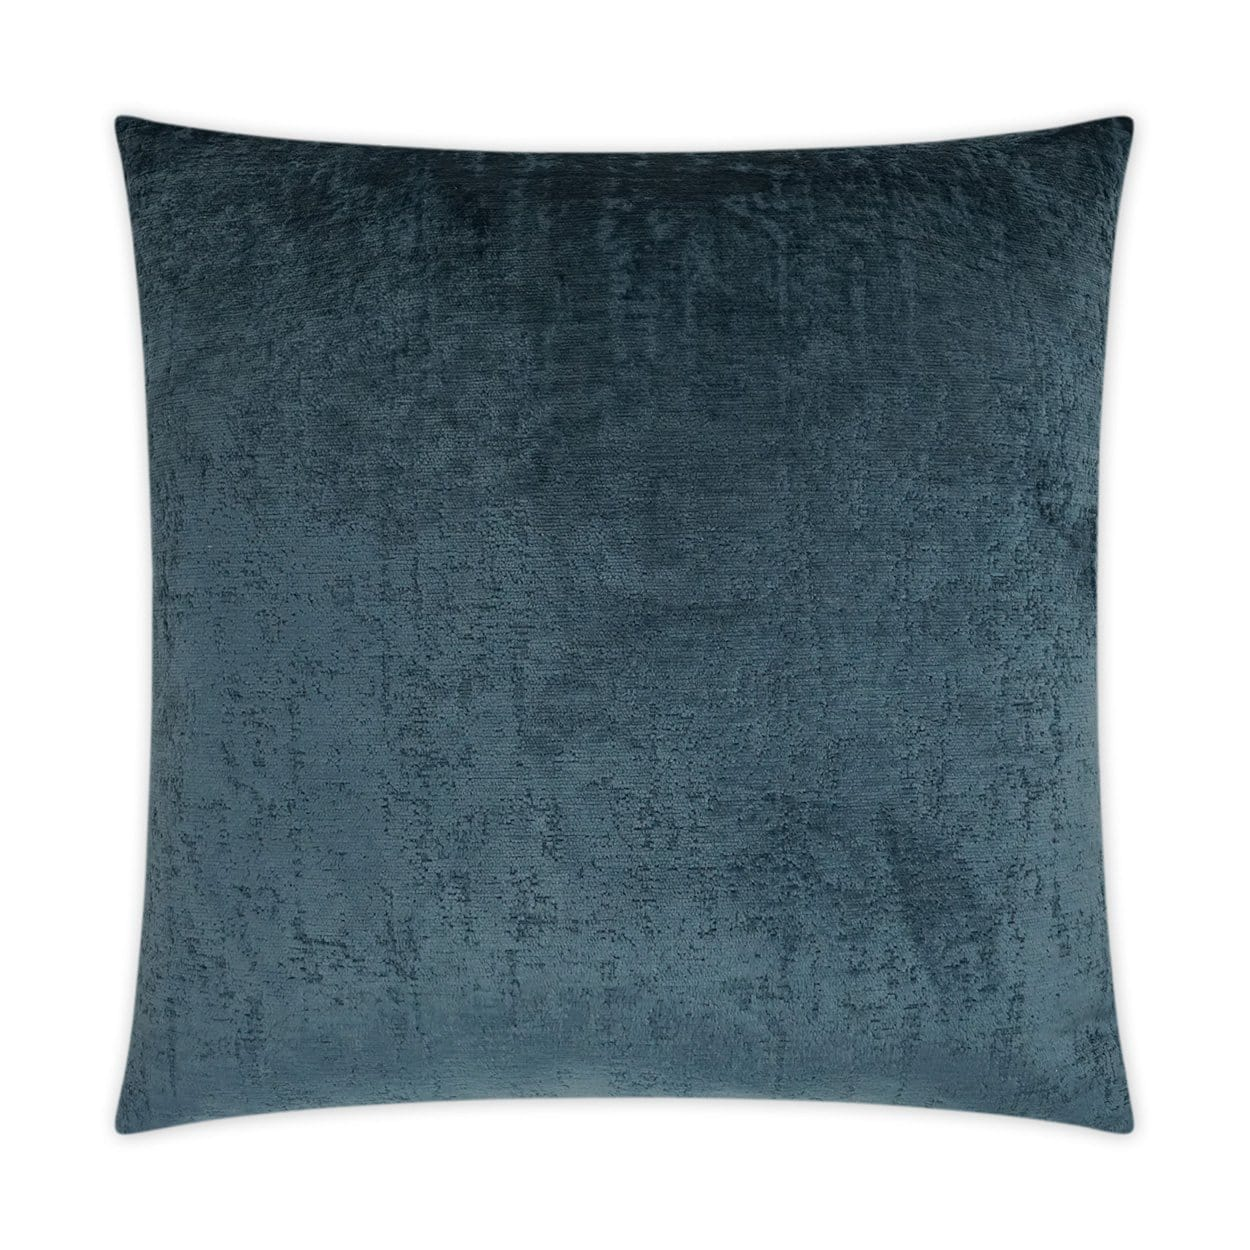 D.V. Kap D.V. Kap Hamlet Pillow - Available in 6 Colors Ash 3402-A